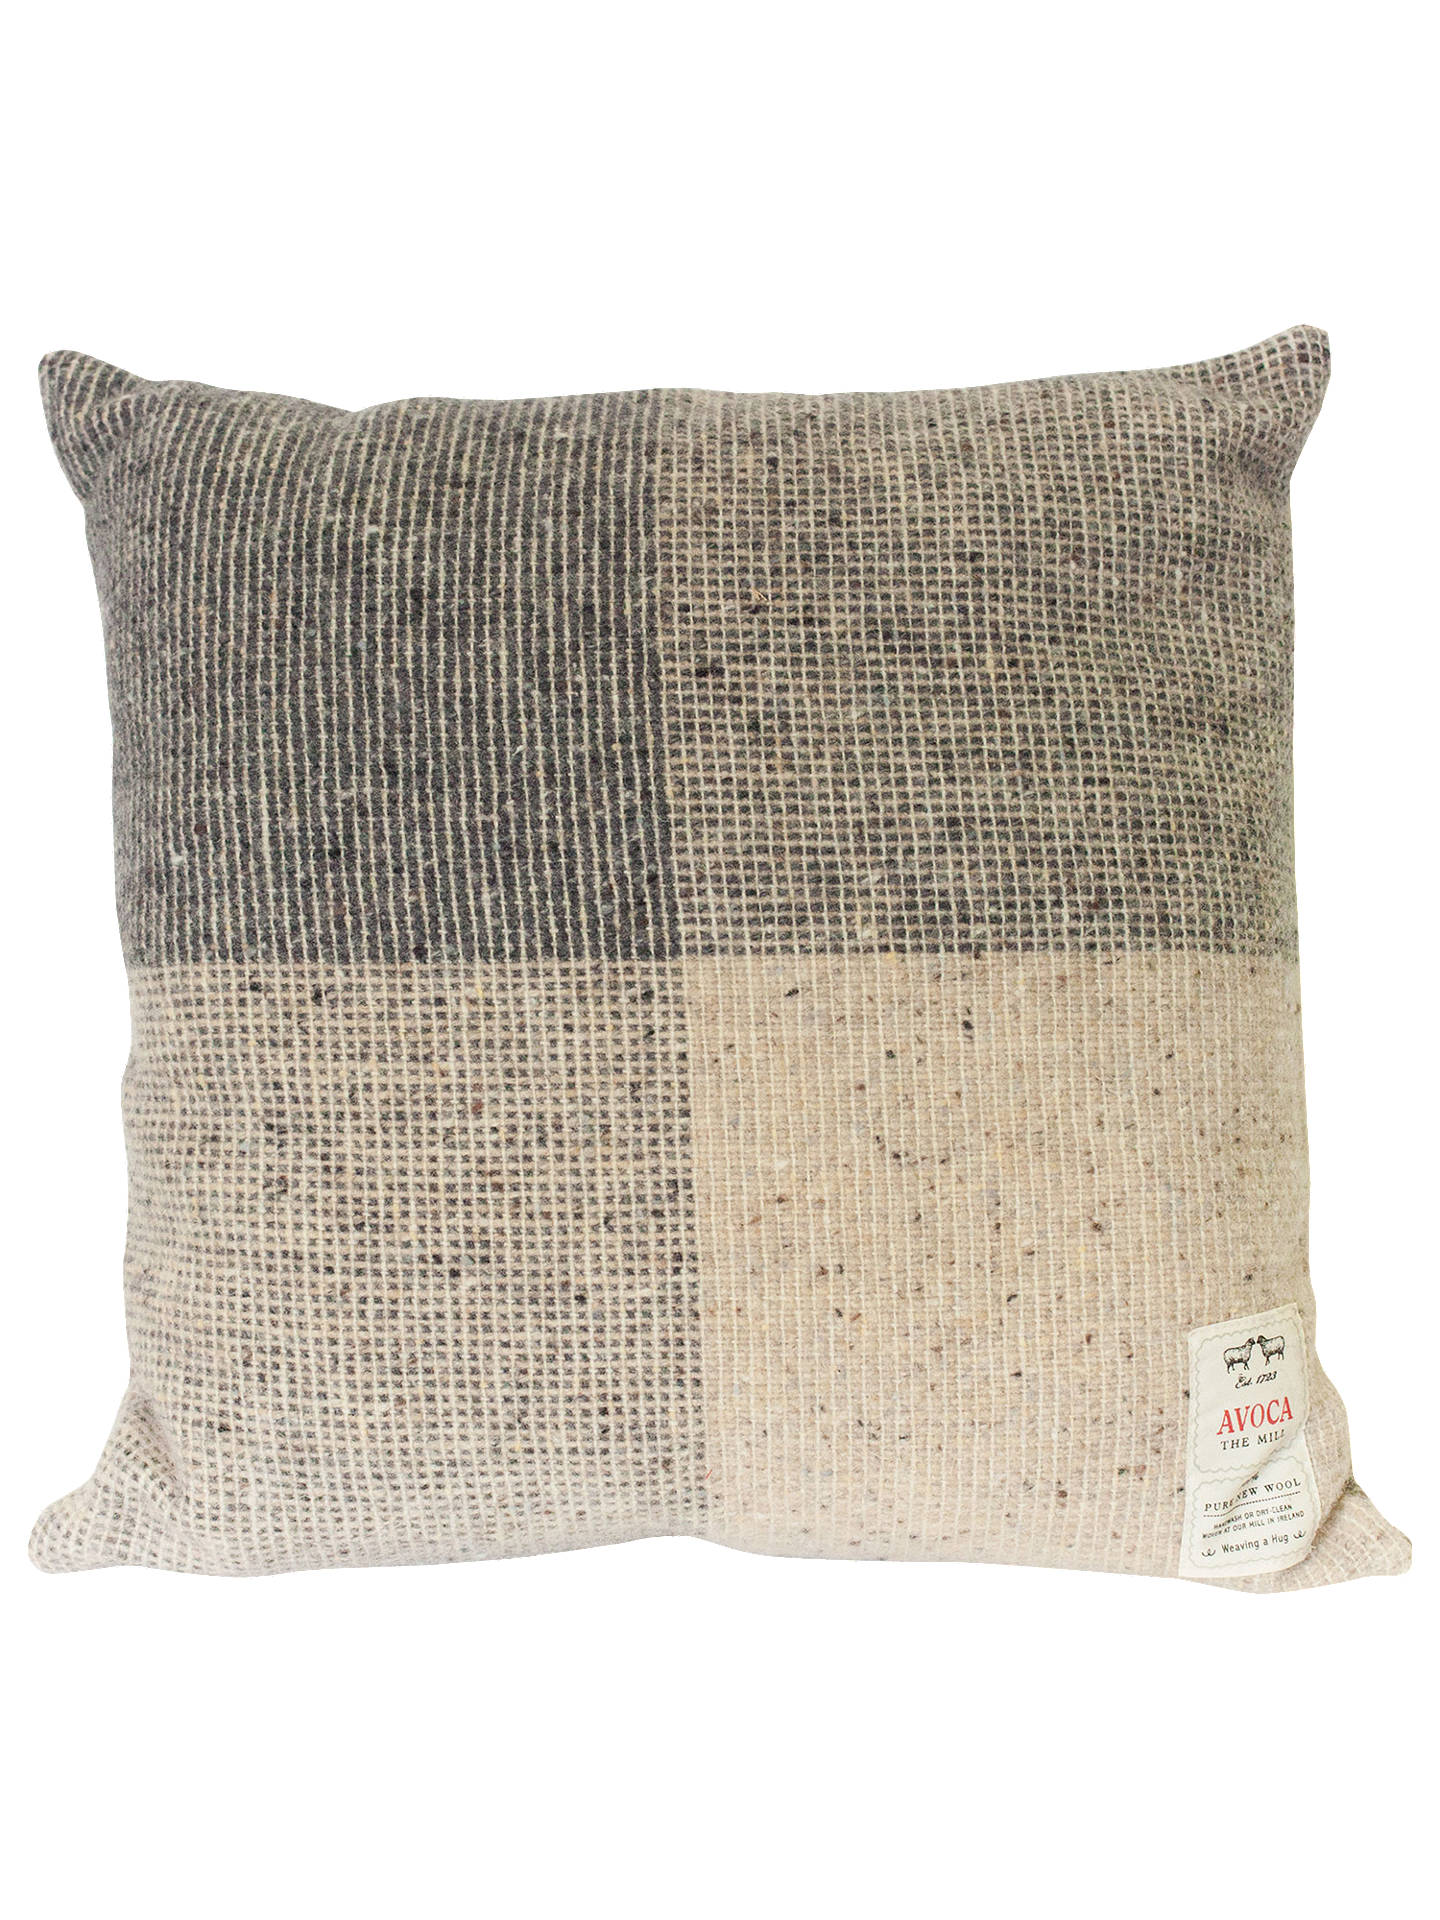 BuyAvoca Artisan Block Wool Cushion Online at johnlewis.com